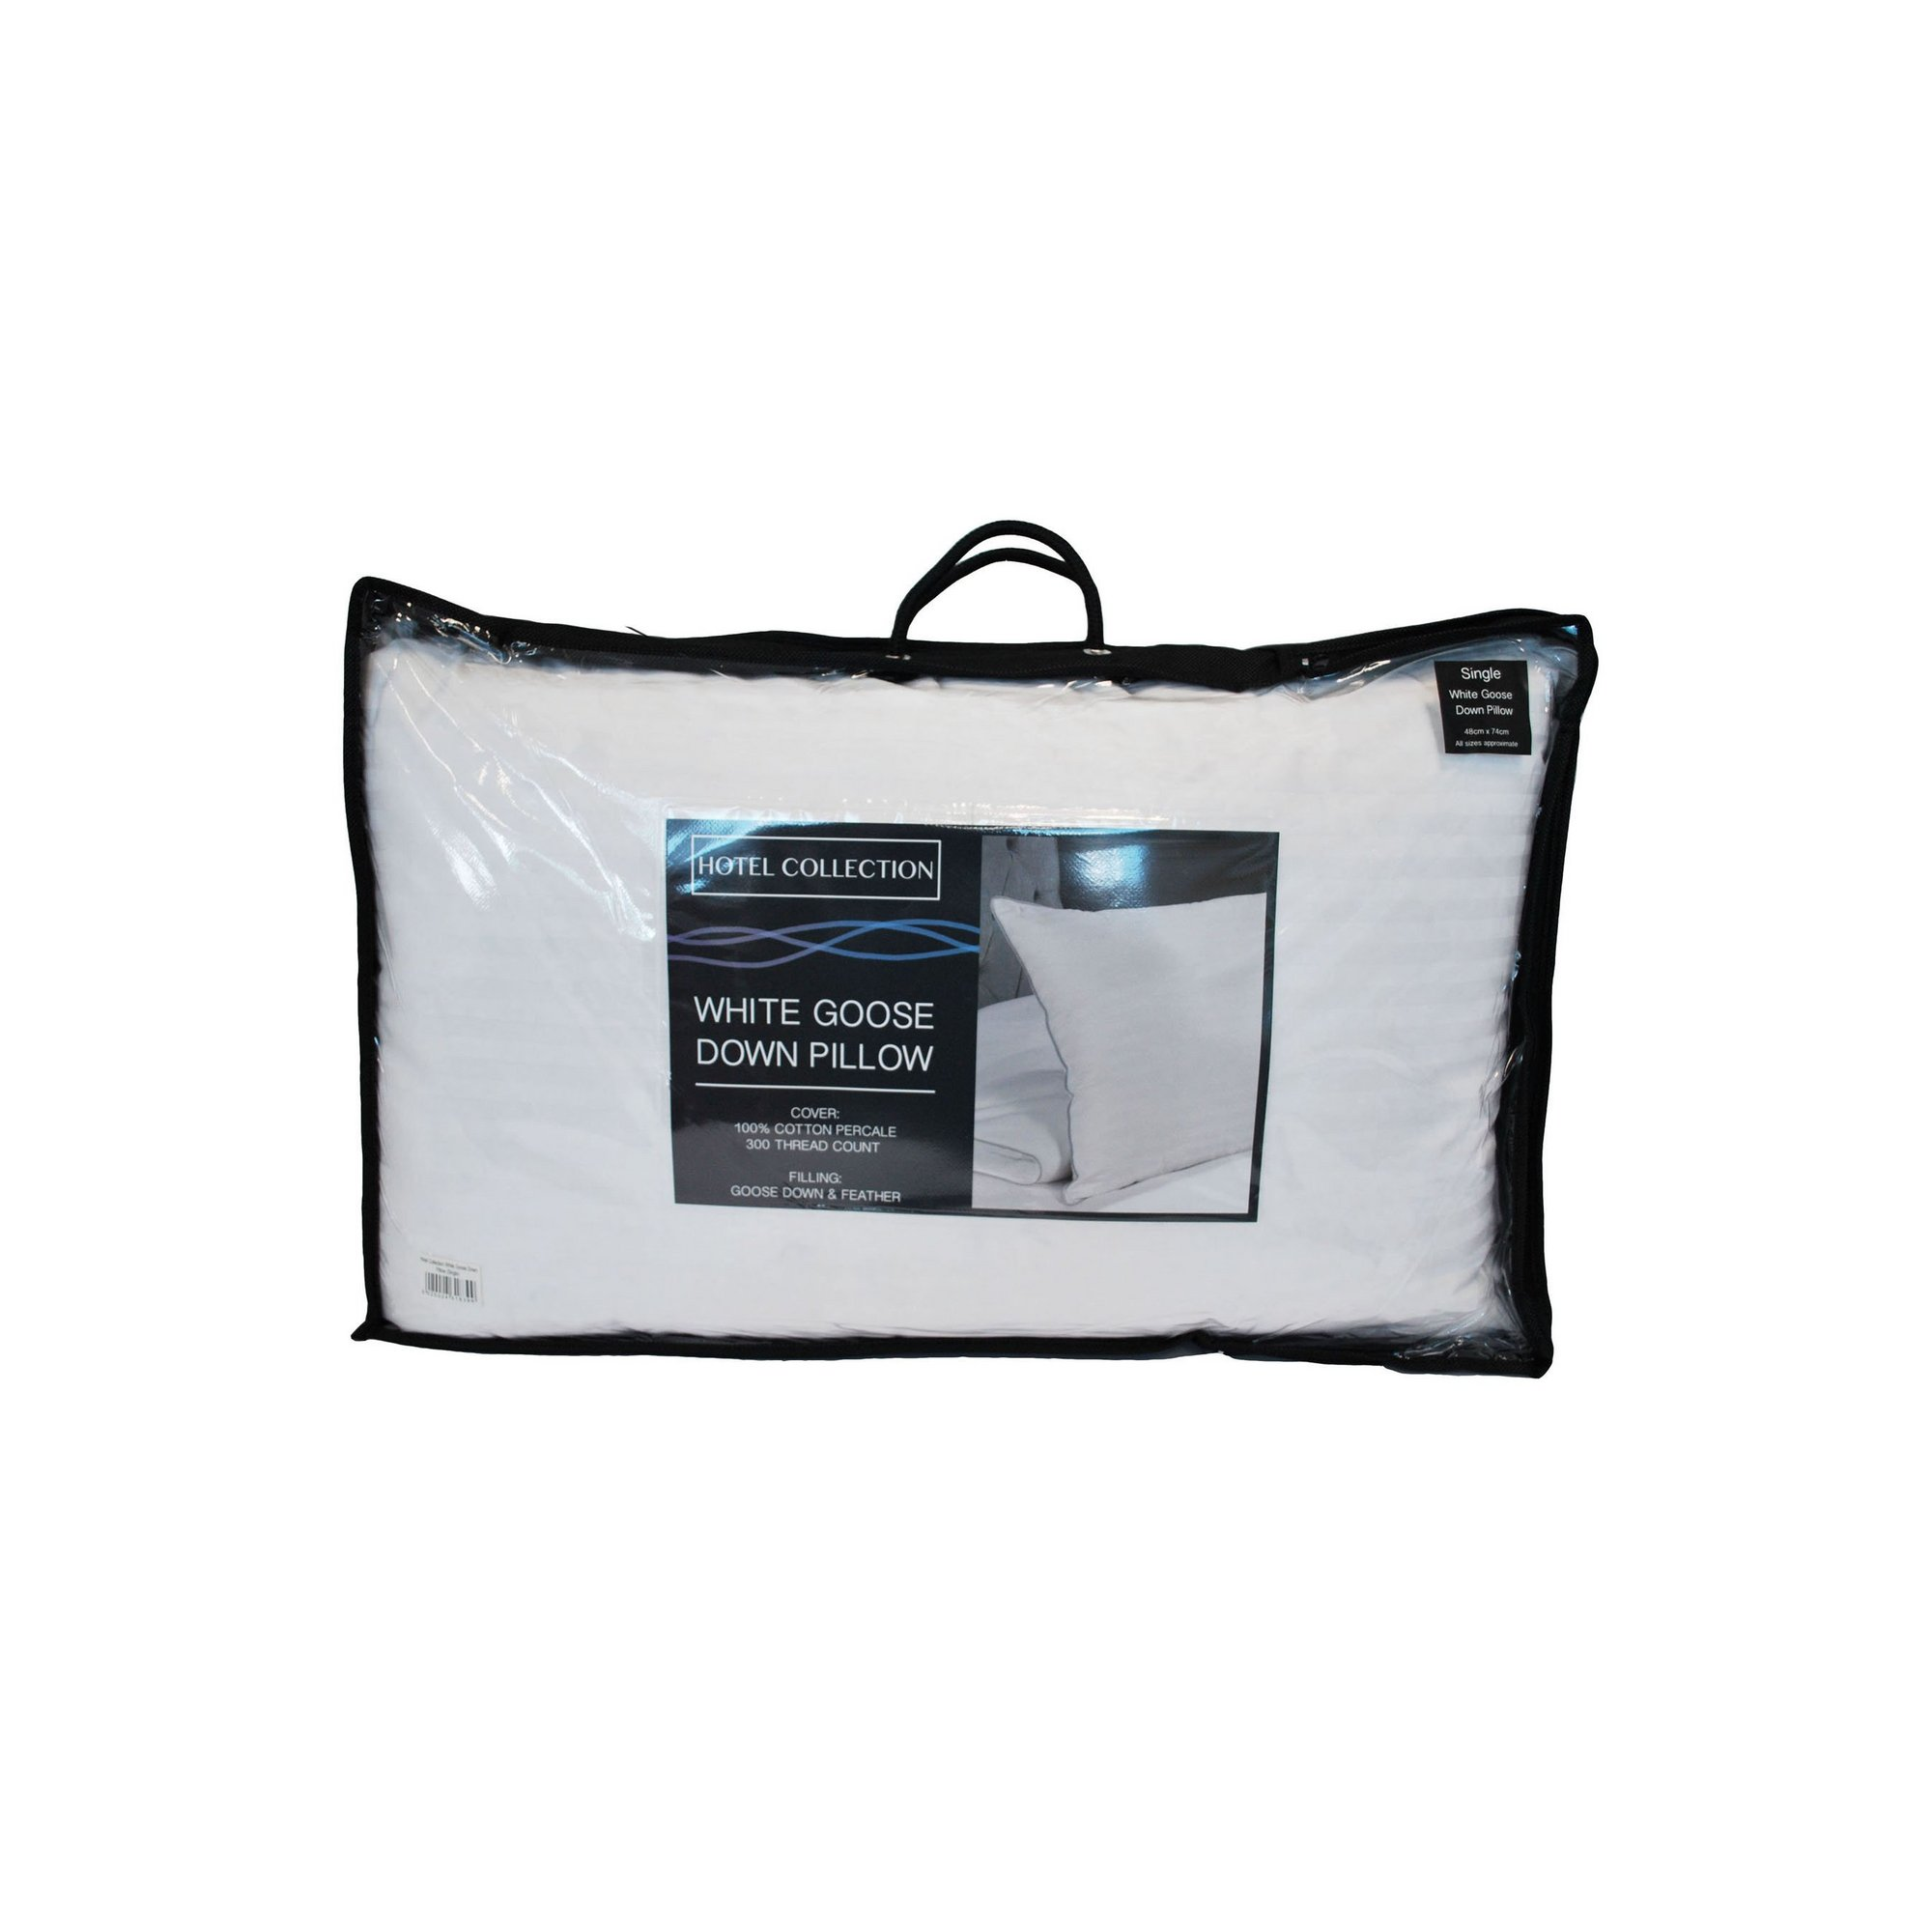 Image of Hotel Collection 5 Star Luxury Goose Feather and Down Pillow